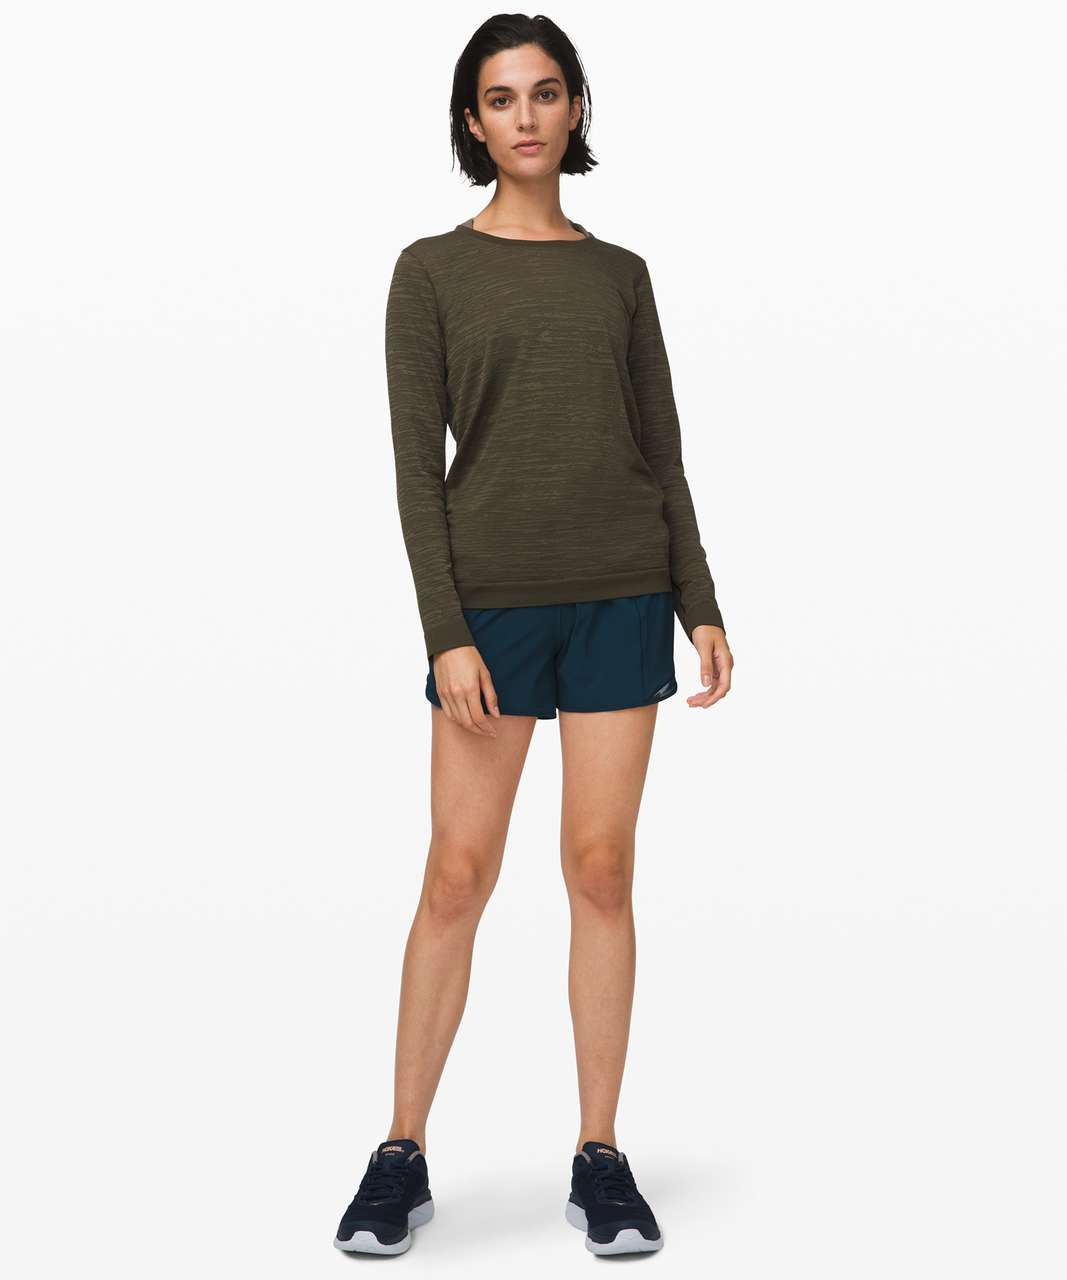 Lululemon Swiftly Relaxed Long Sleeve - Dark Olive / Fatigue Green